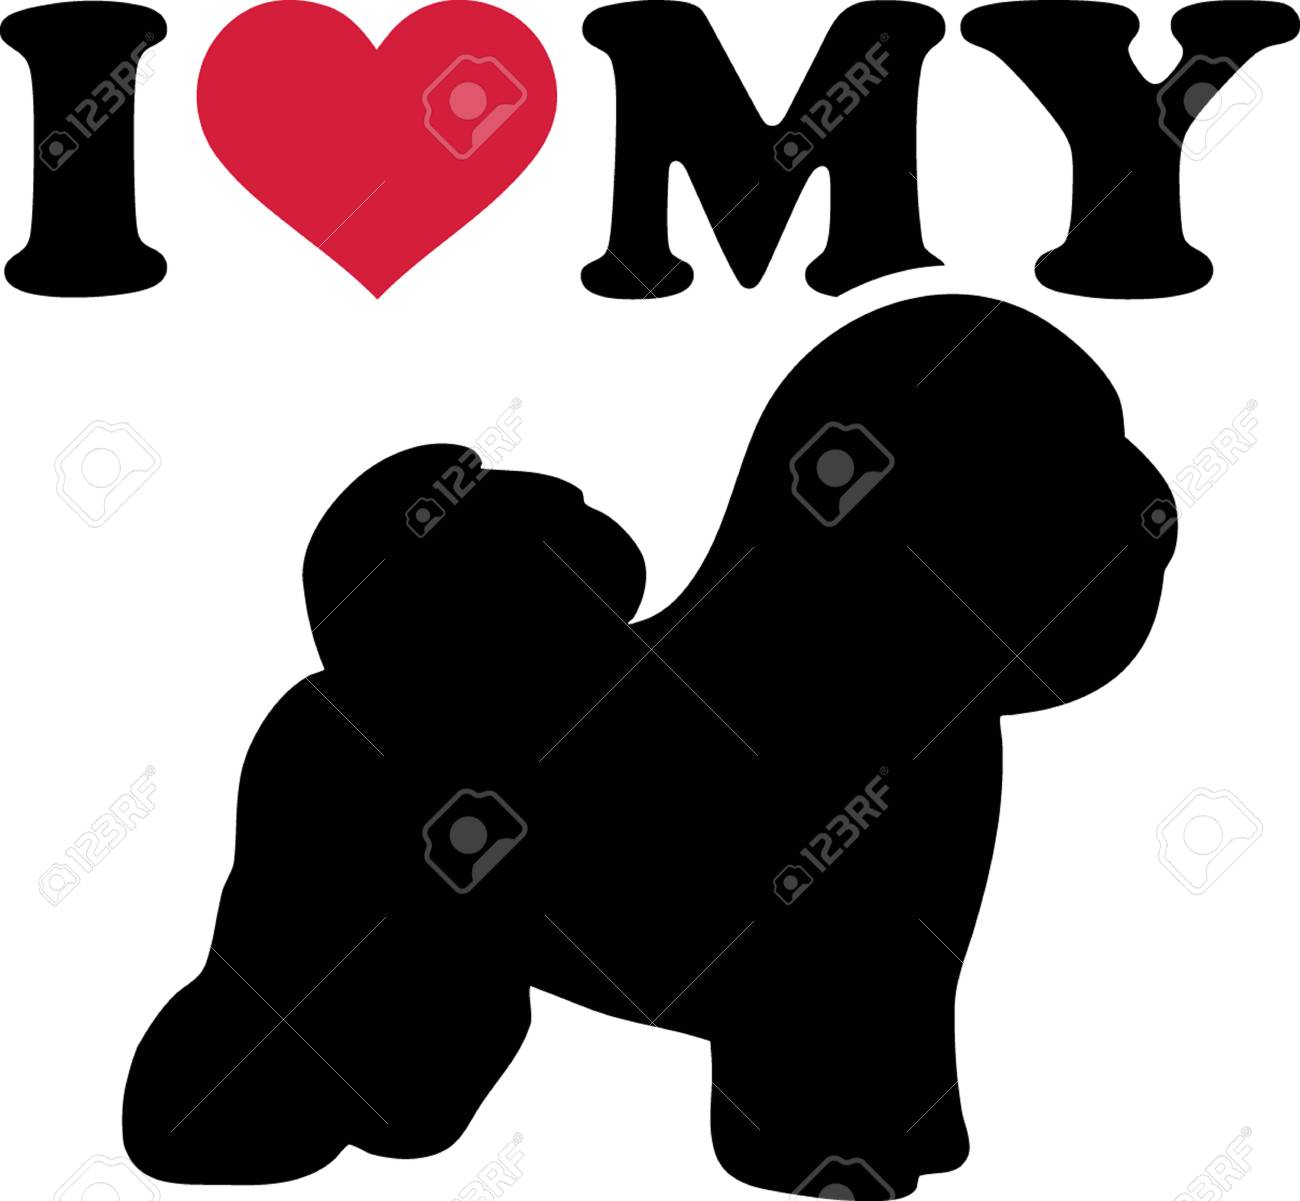 I Love My Bichon Frise With Red Heart And Silhouette Royalty Free Cliparts Vectors And Stock Illustration Image 103695688